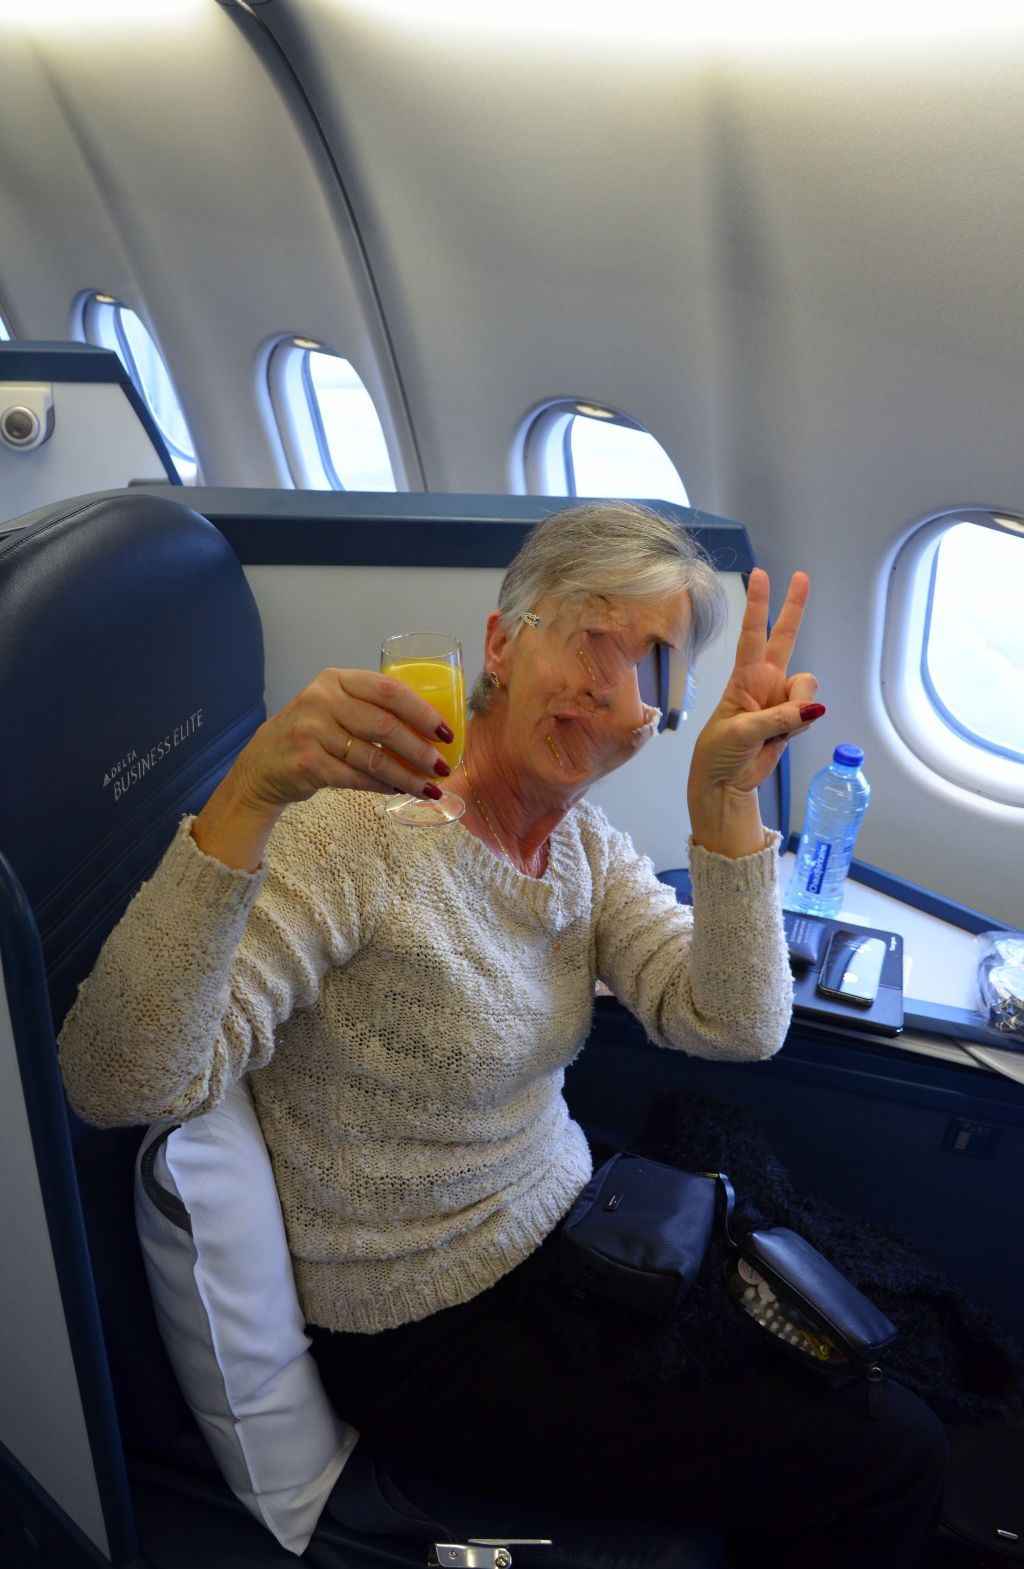 Www Bing Comseattle143 305 70: Review Of Delta Air Lines Flight From Amsterdam To Seattle